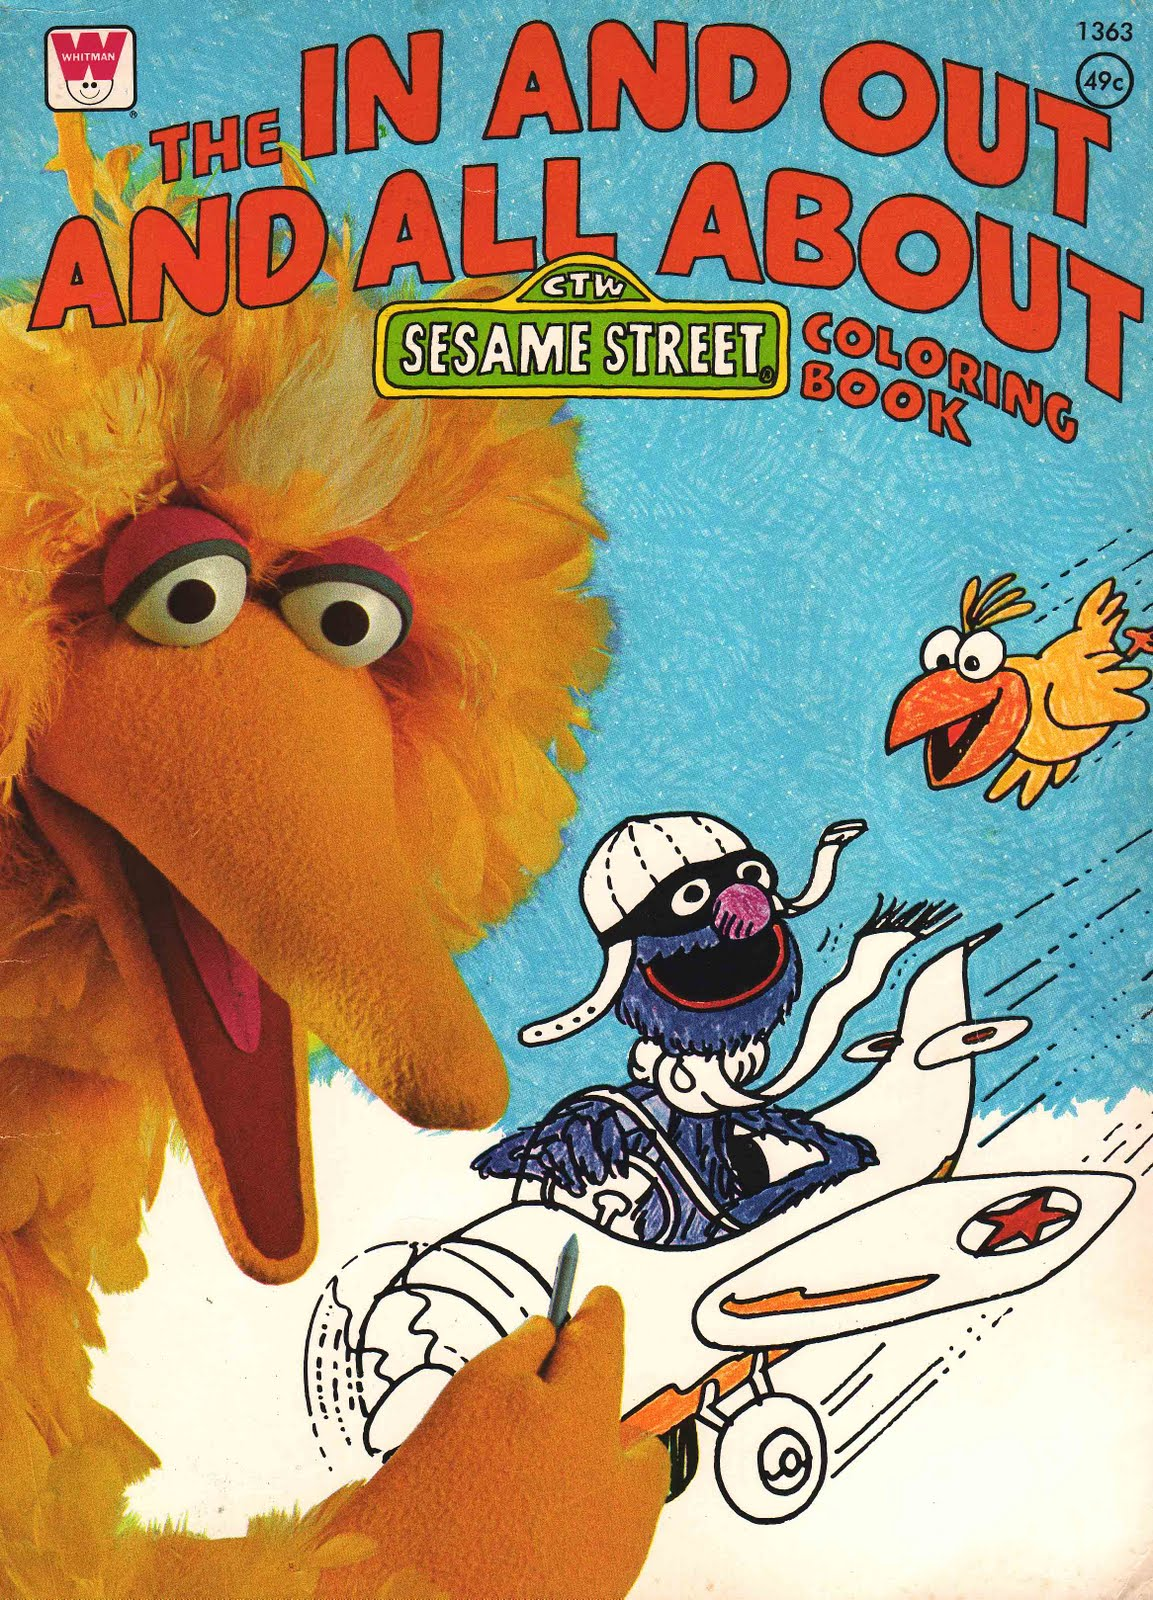 Vintage Kids' Books My Kid Loves: The In and Out and All ...